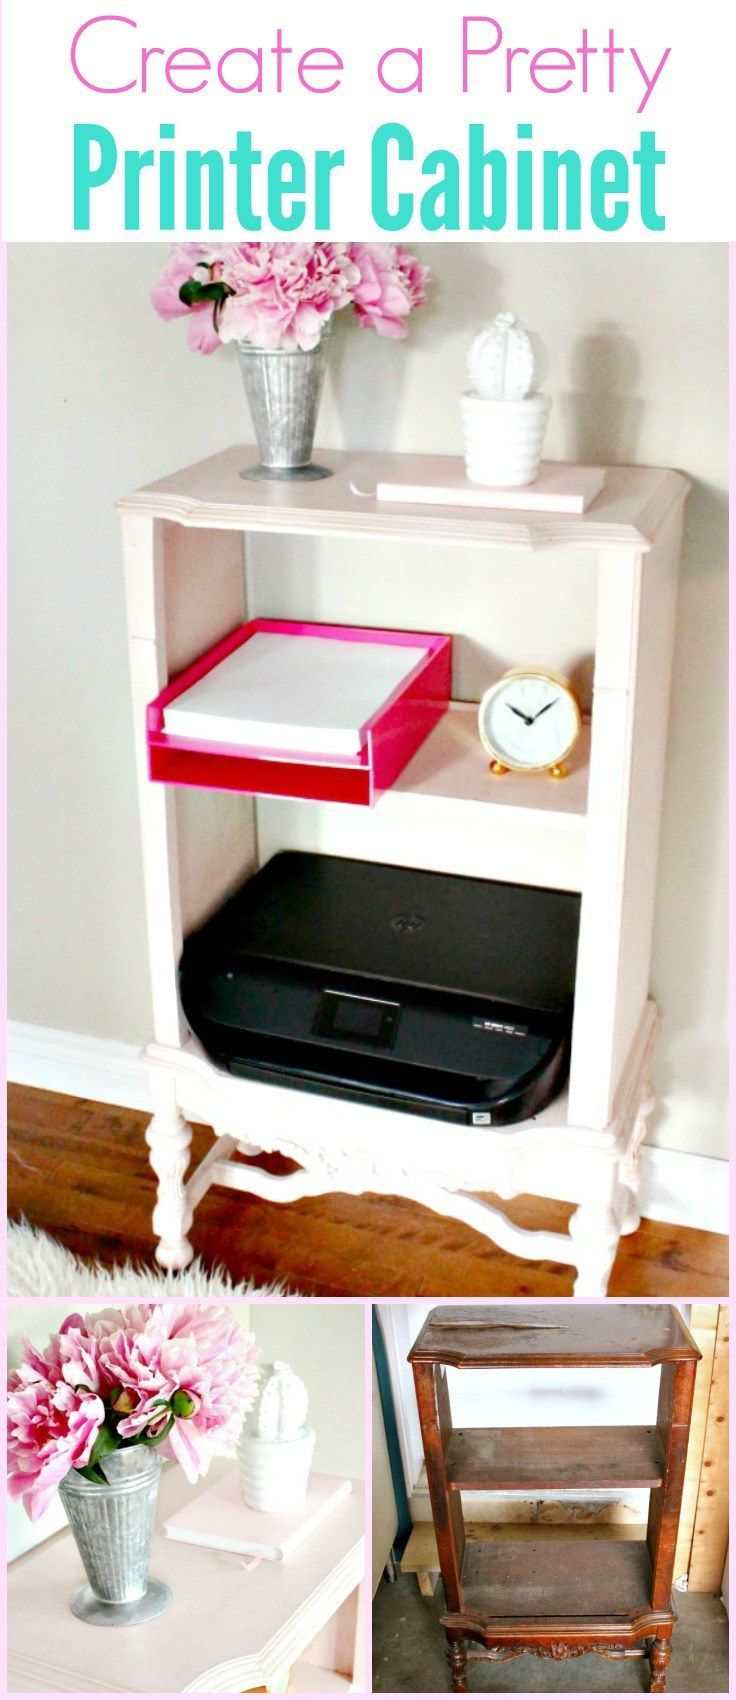 diy furniture refinishing projects. Create A Pretty Office Home With An Easy Furniture Refinishing Project Using Blush Chalk Paint. Diy Projects G